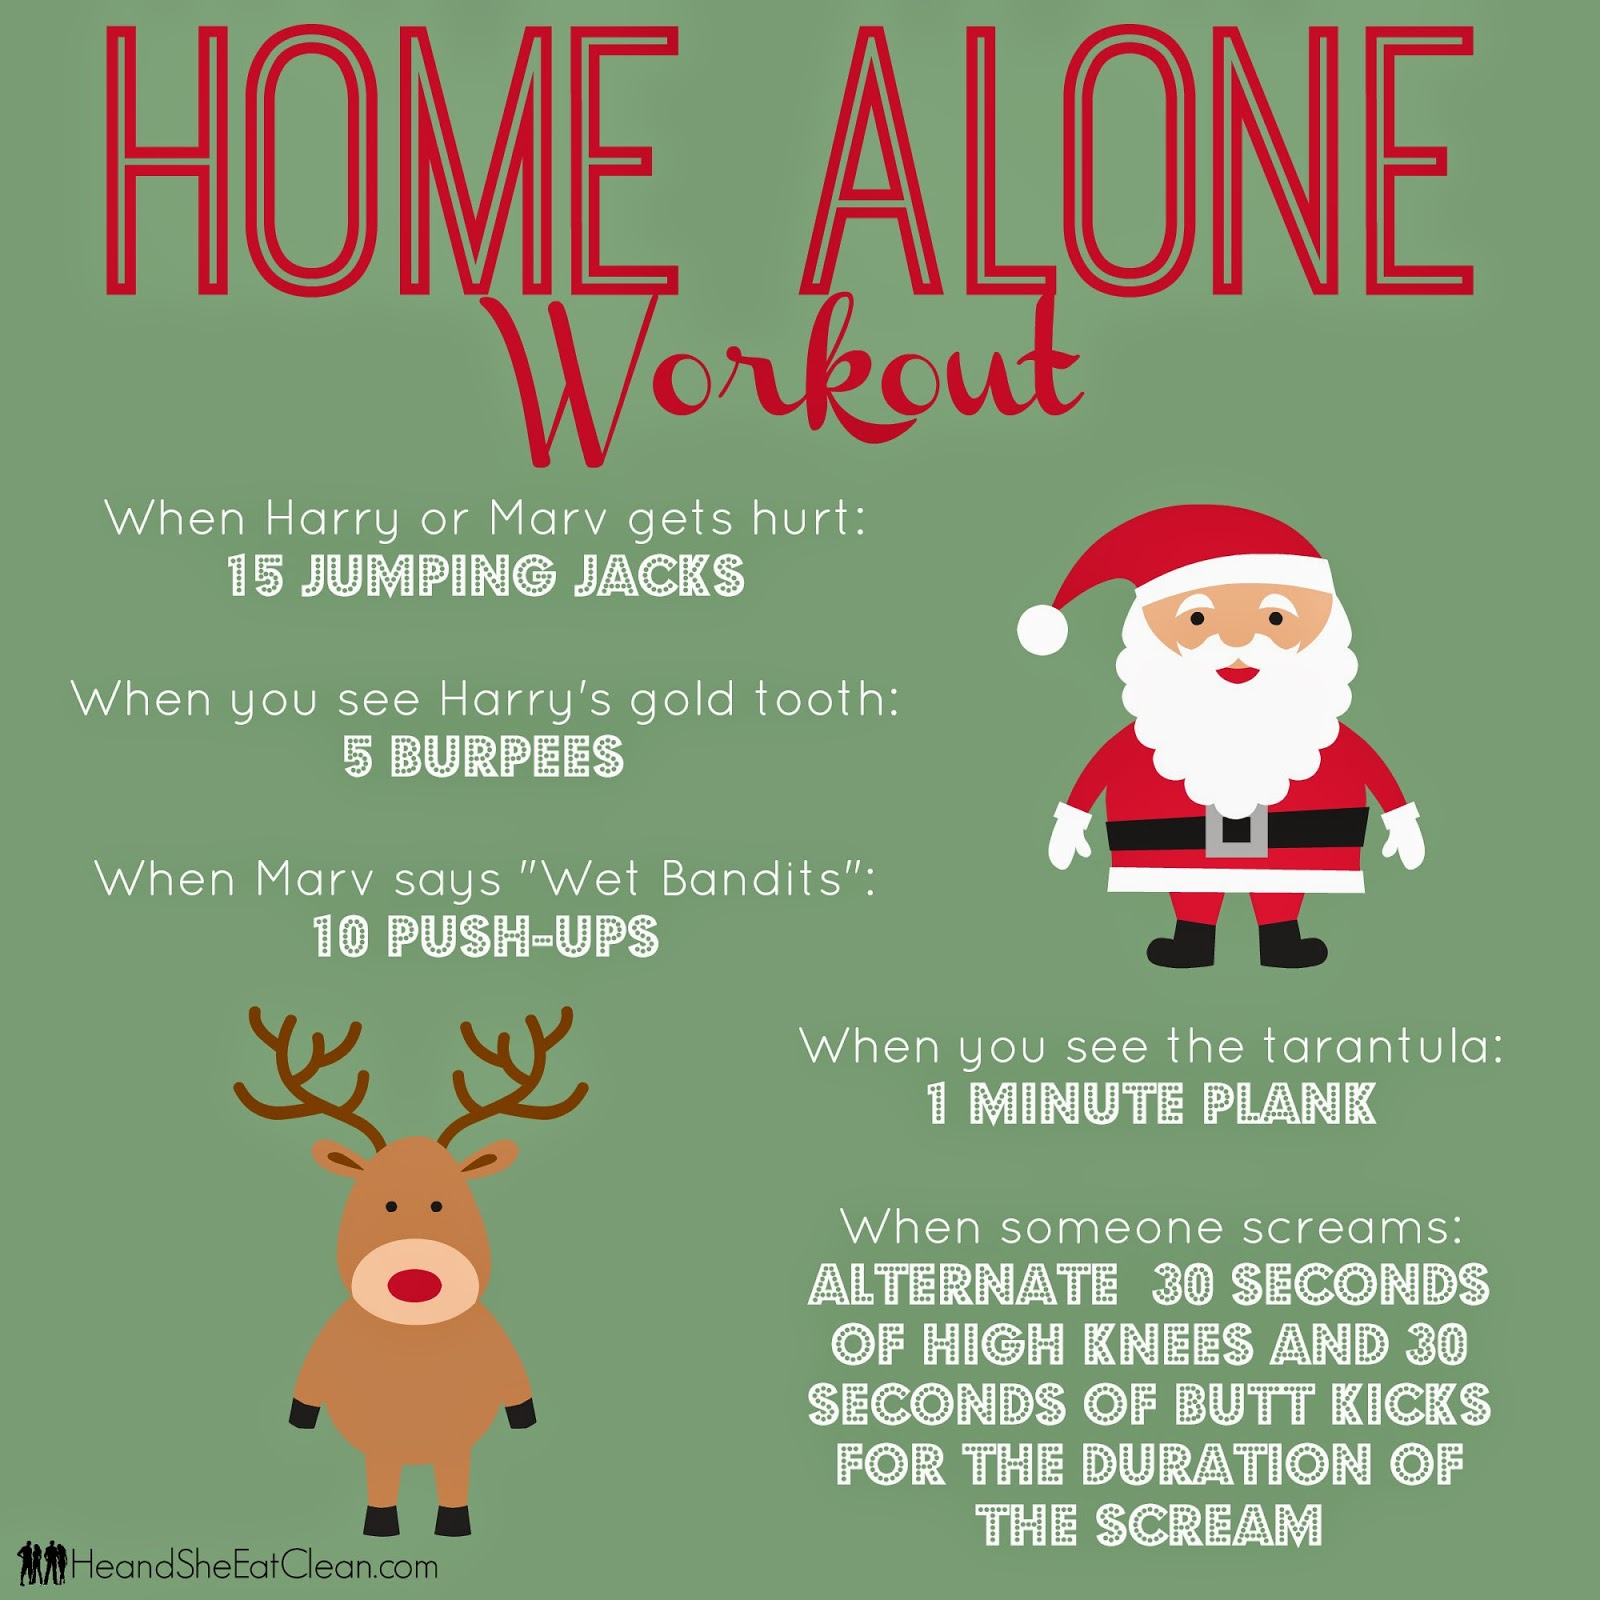 Home Alone Workout — He & She Eat Clean | Healthy Recipes & Workout Plans